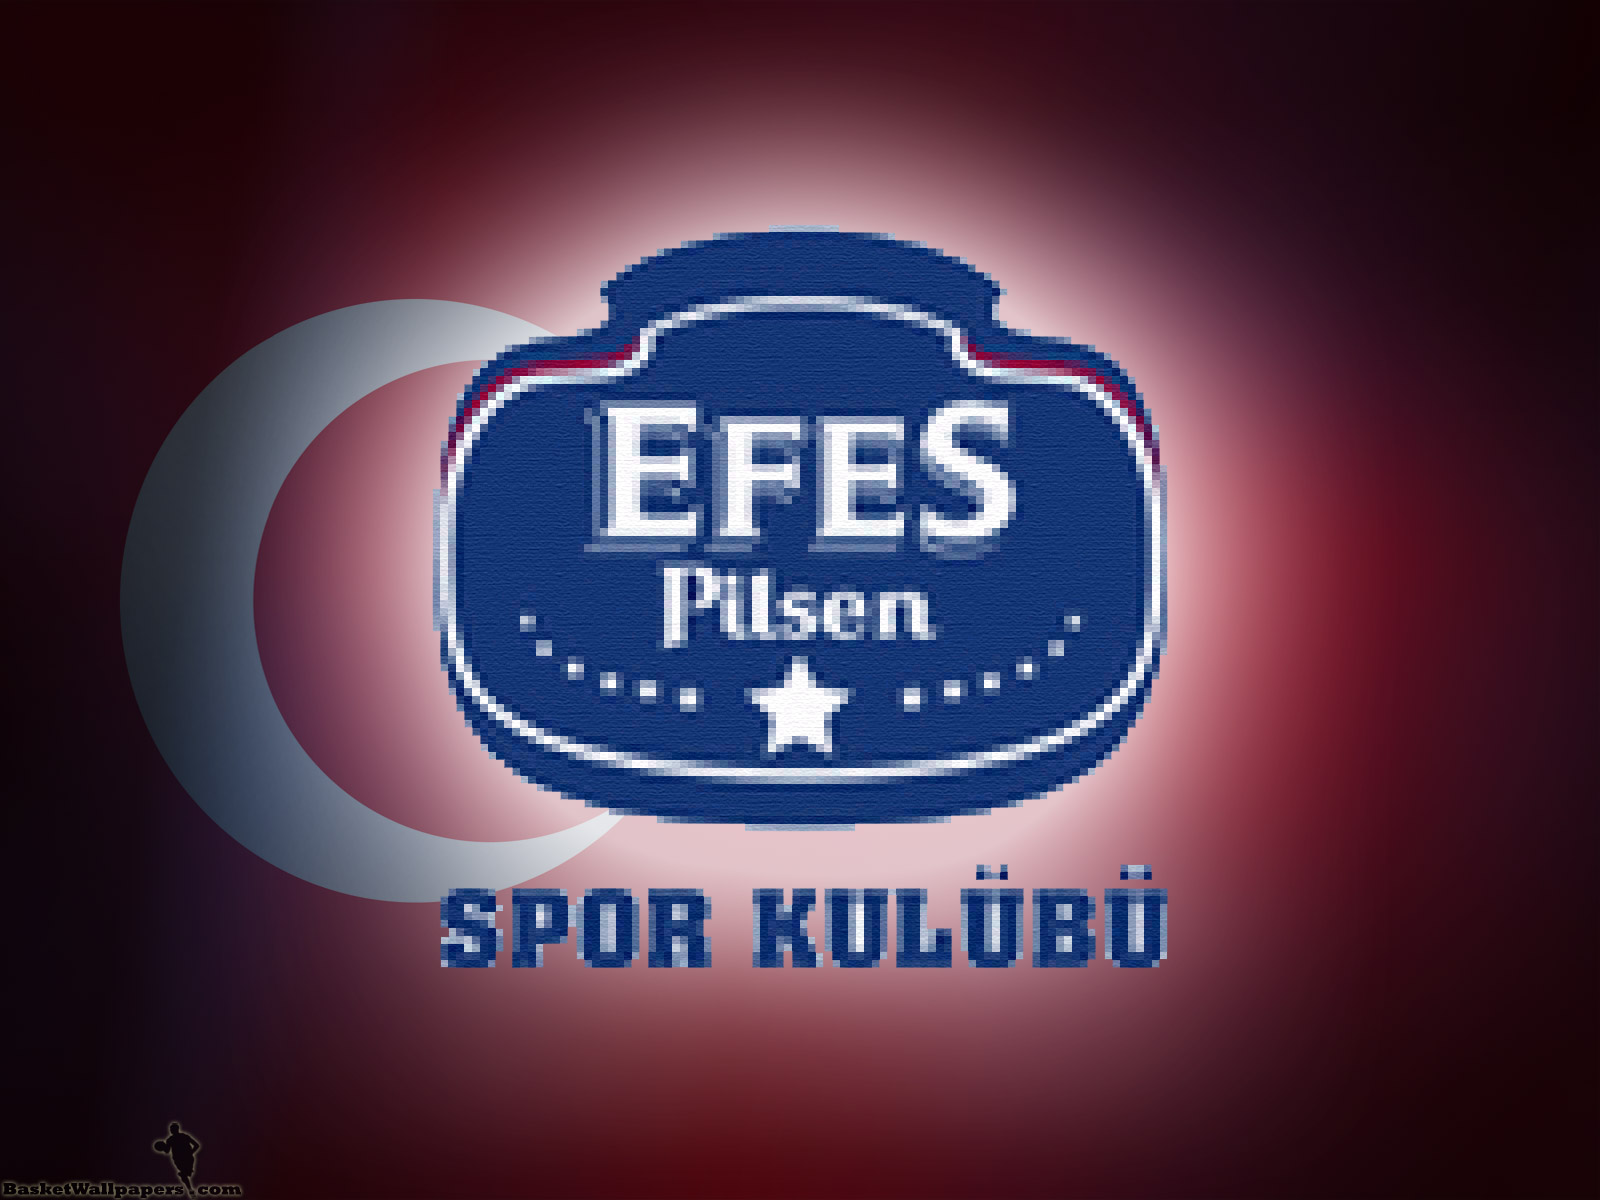 efes pilsener blues фестиваль: